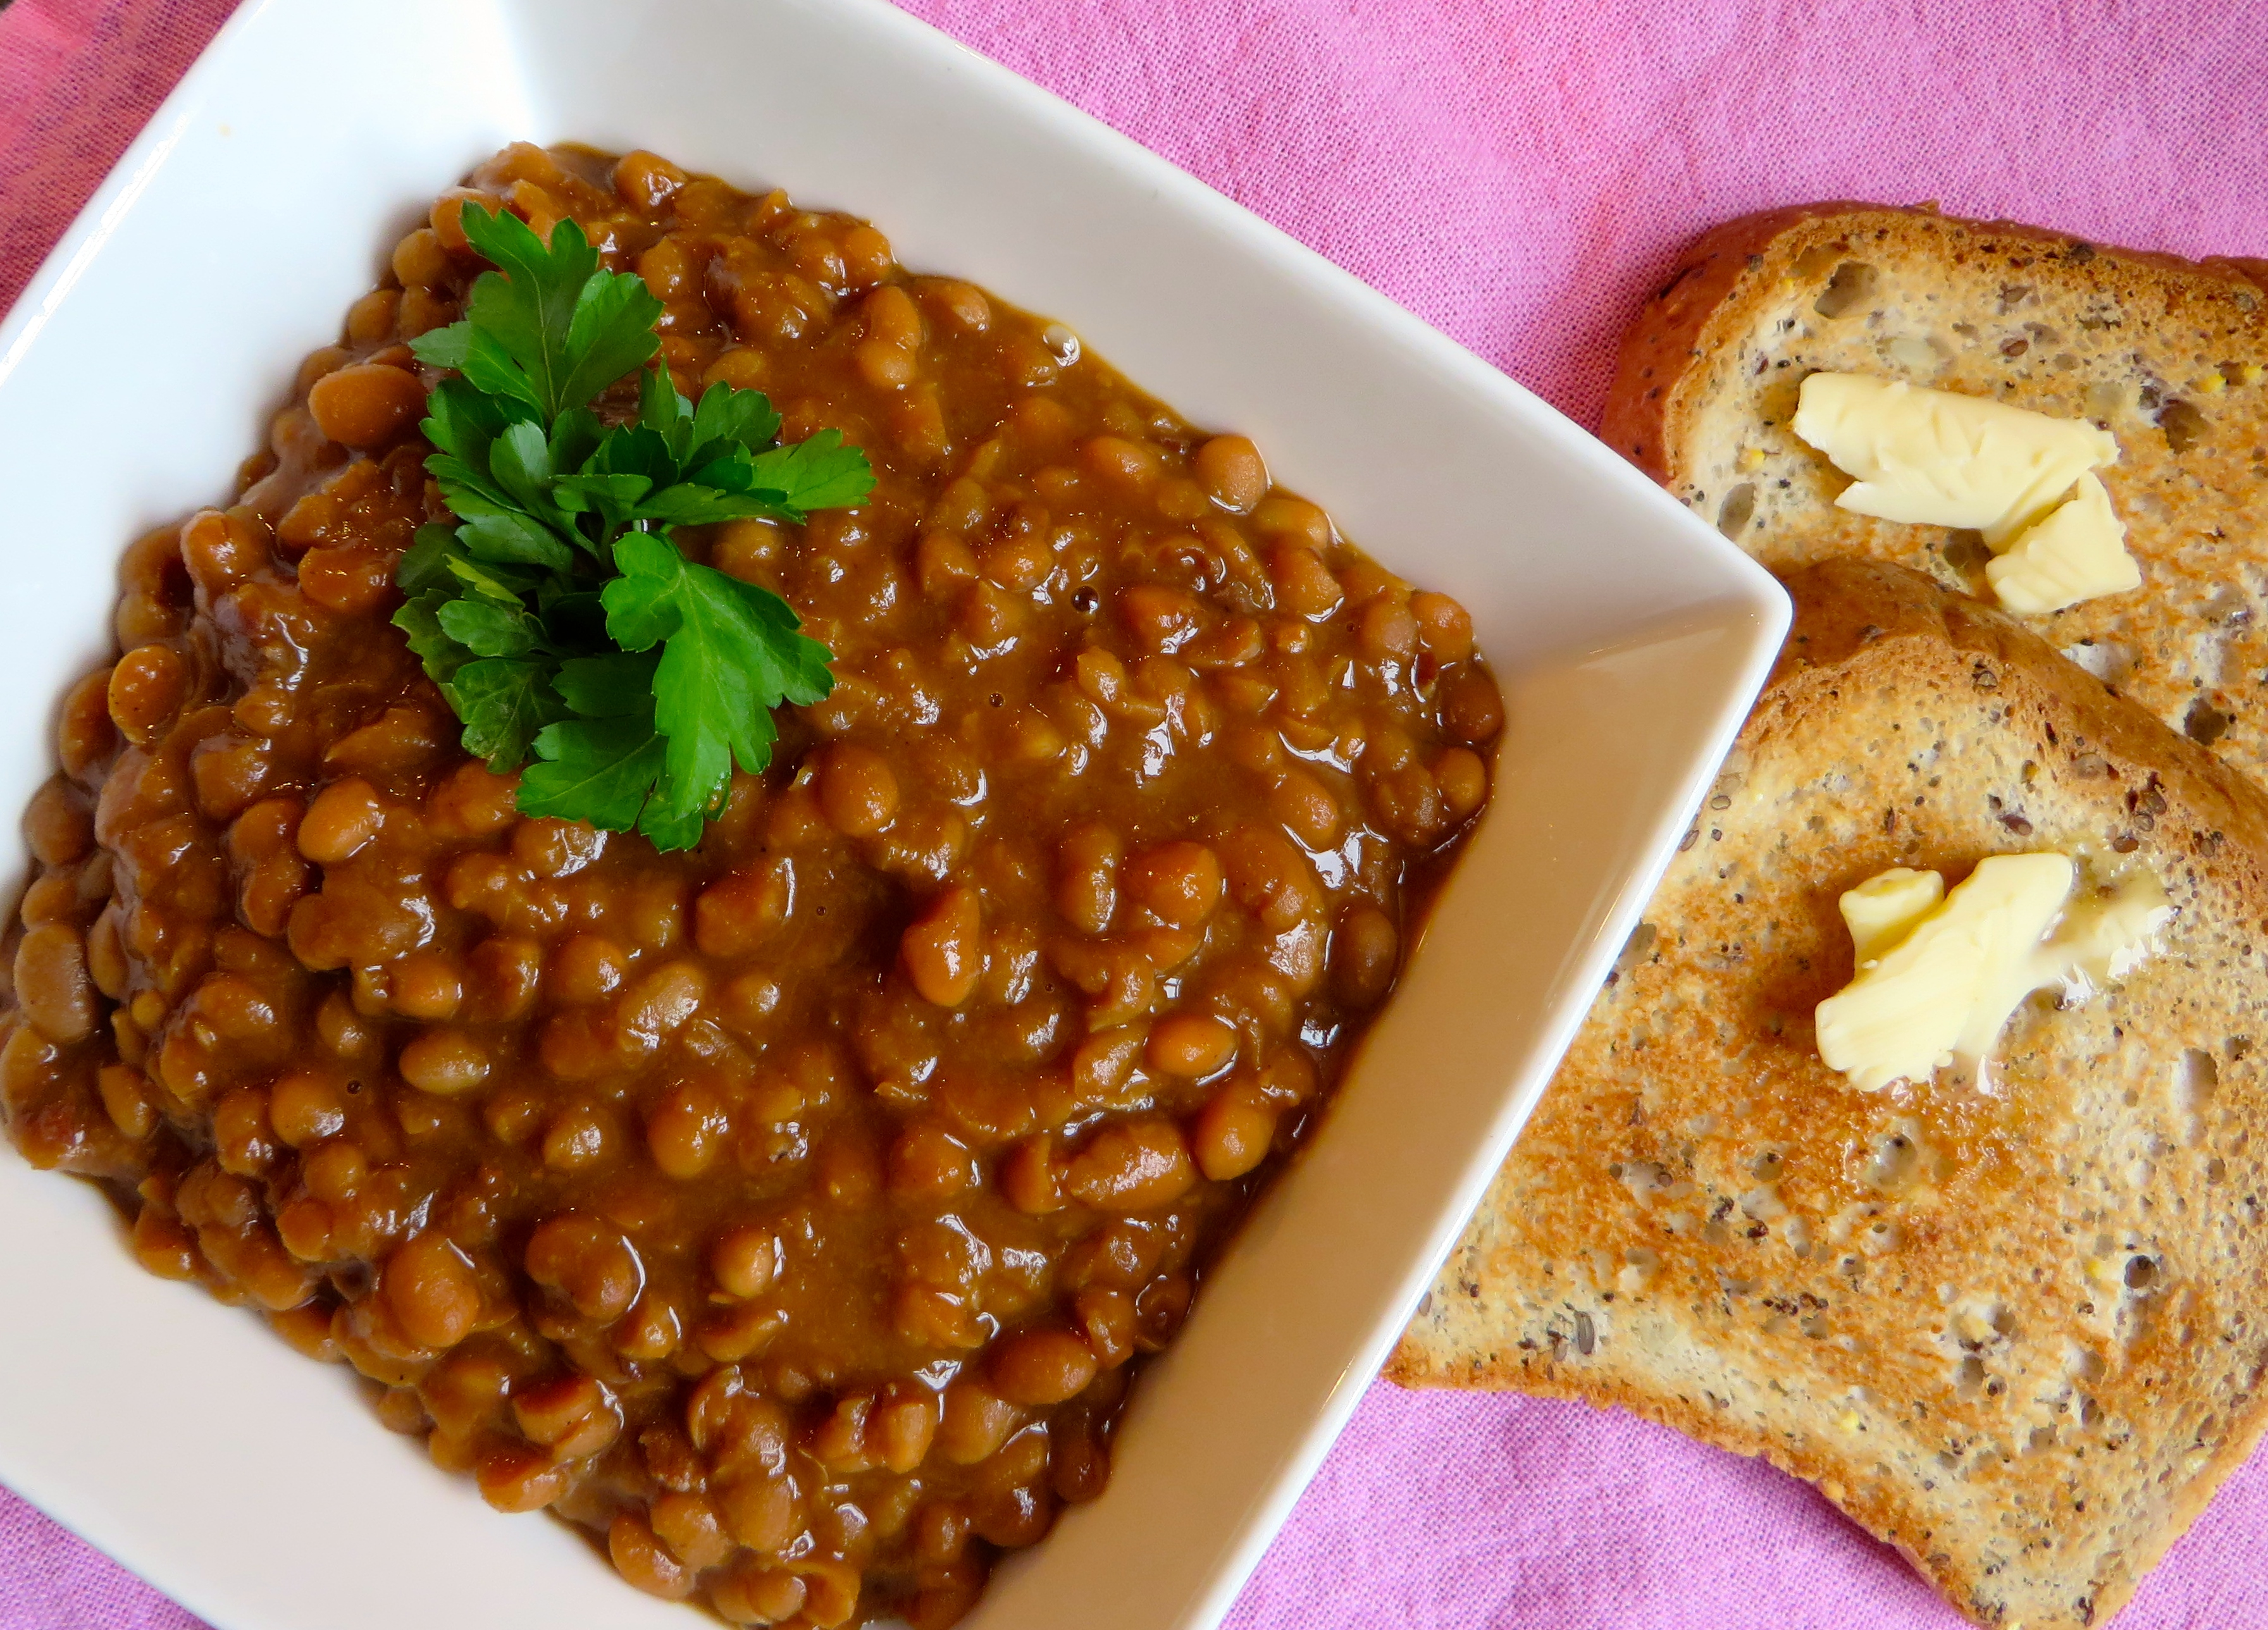 Homemade Baked Beans with Bacon Gluten Free